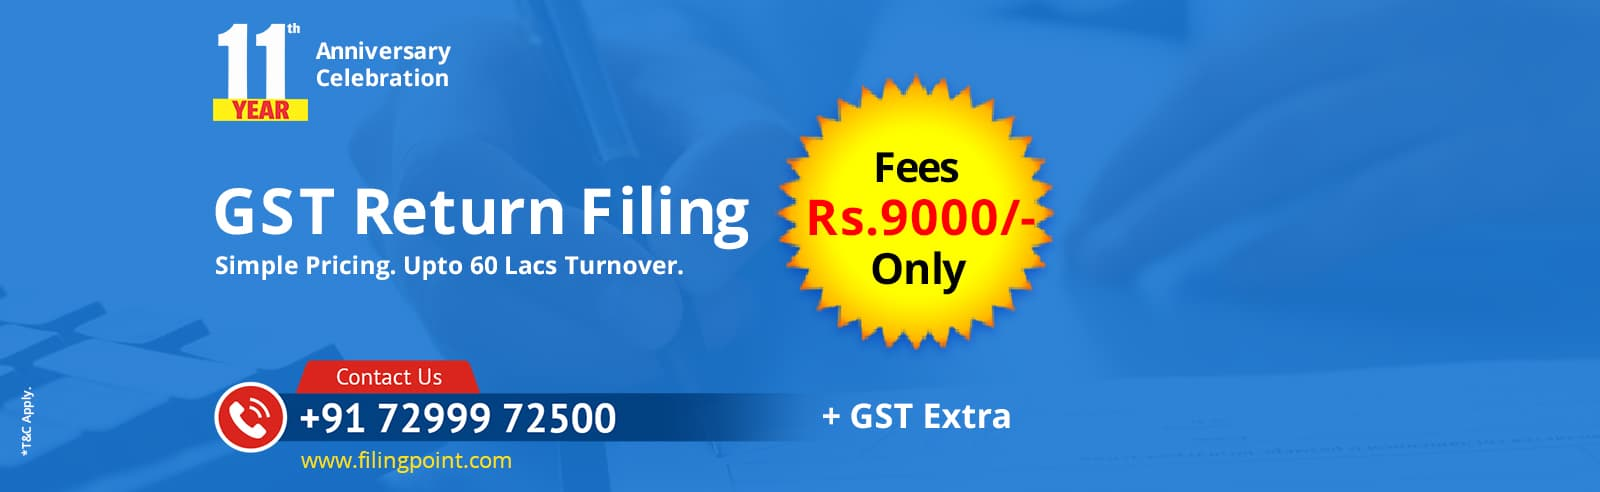 GST Filing Services Near Me Chennai Anna Nagar First Main Road Anna Nagar East Anna Nagar